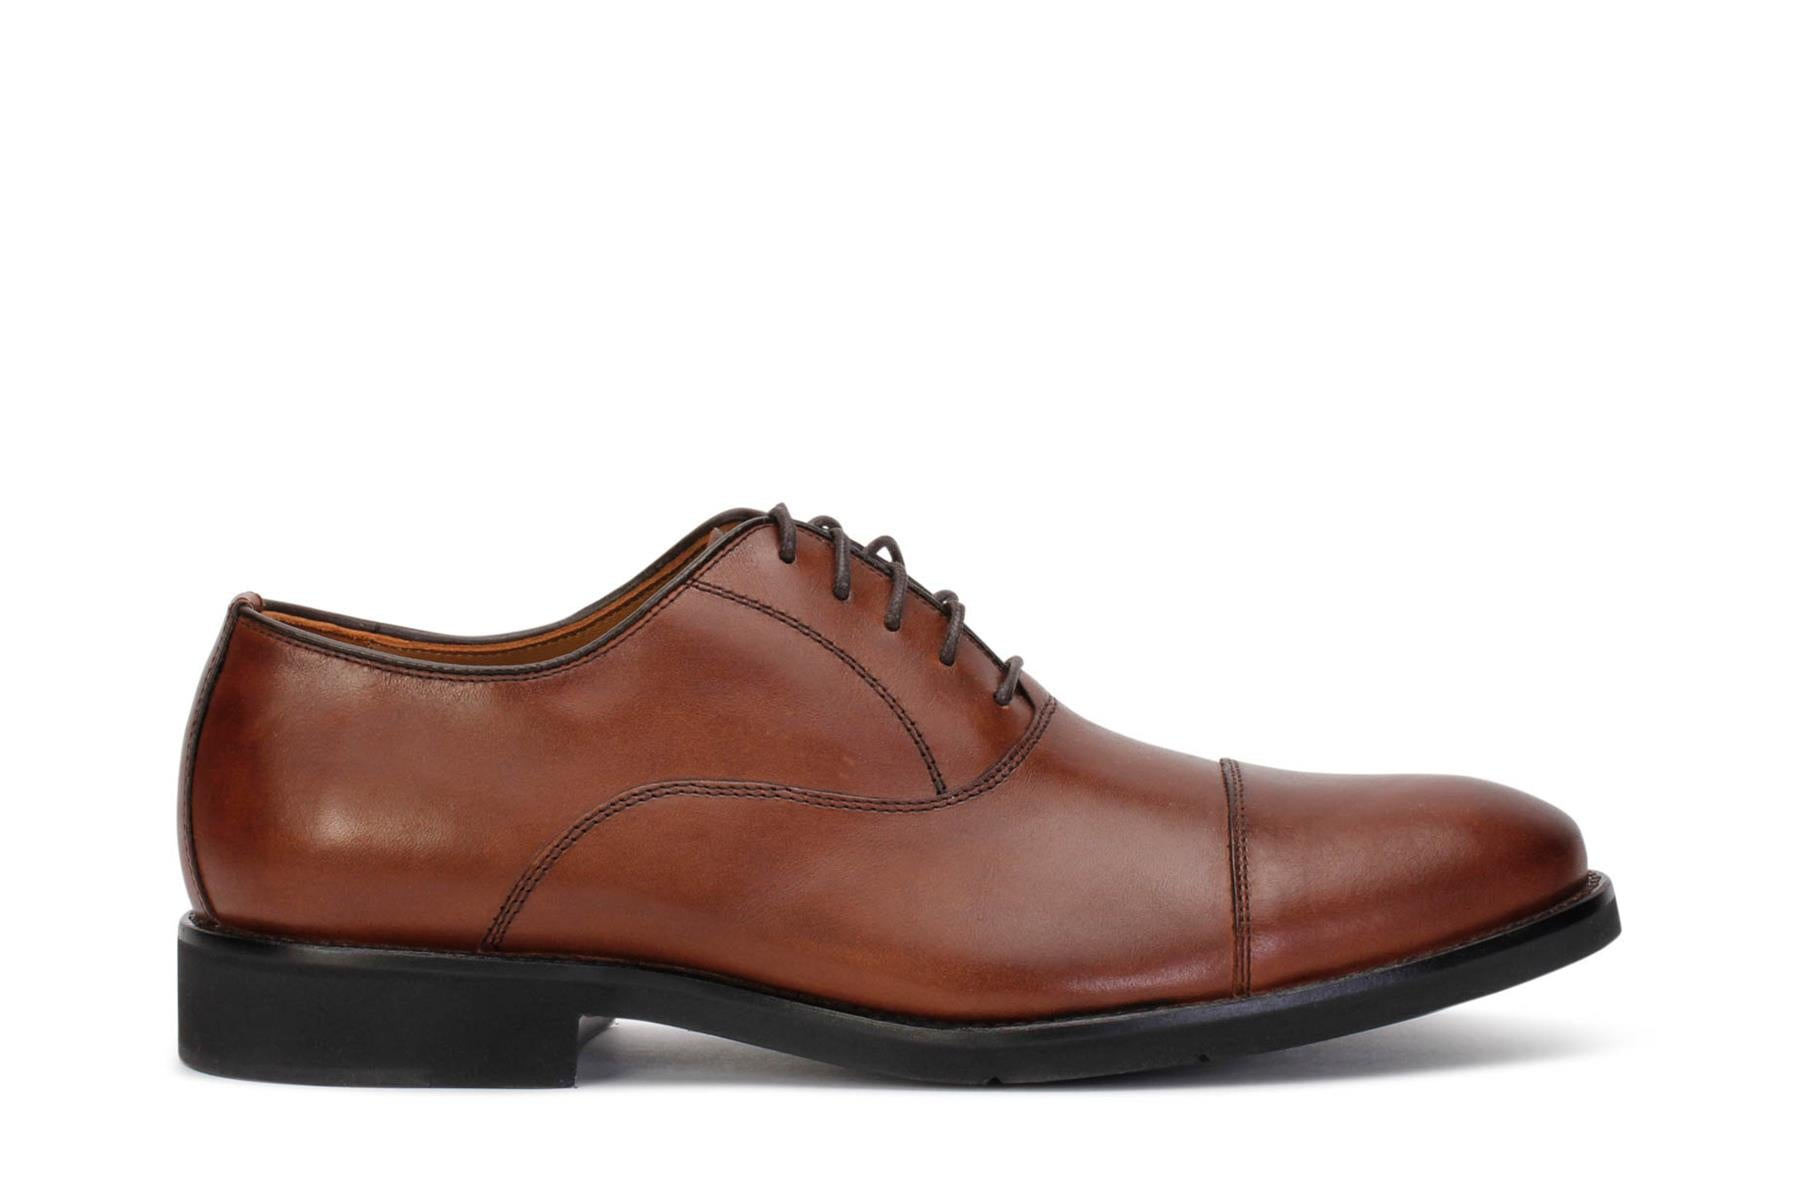 johnston-murphy-mens-oxford-lace-up-clarson-shoes-oak-leather-20-3916-main